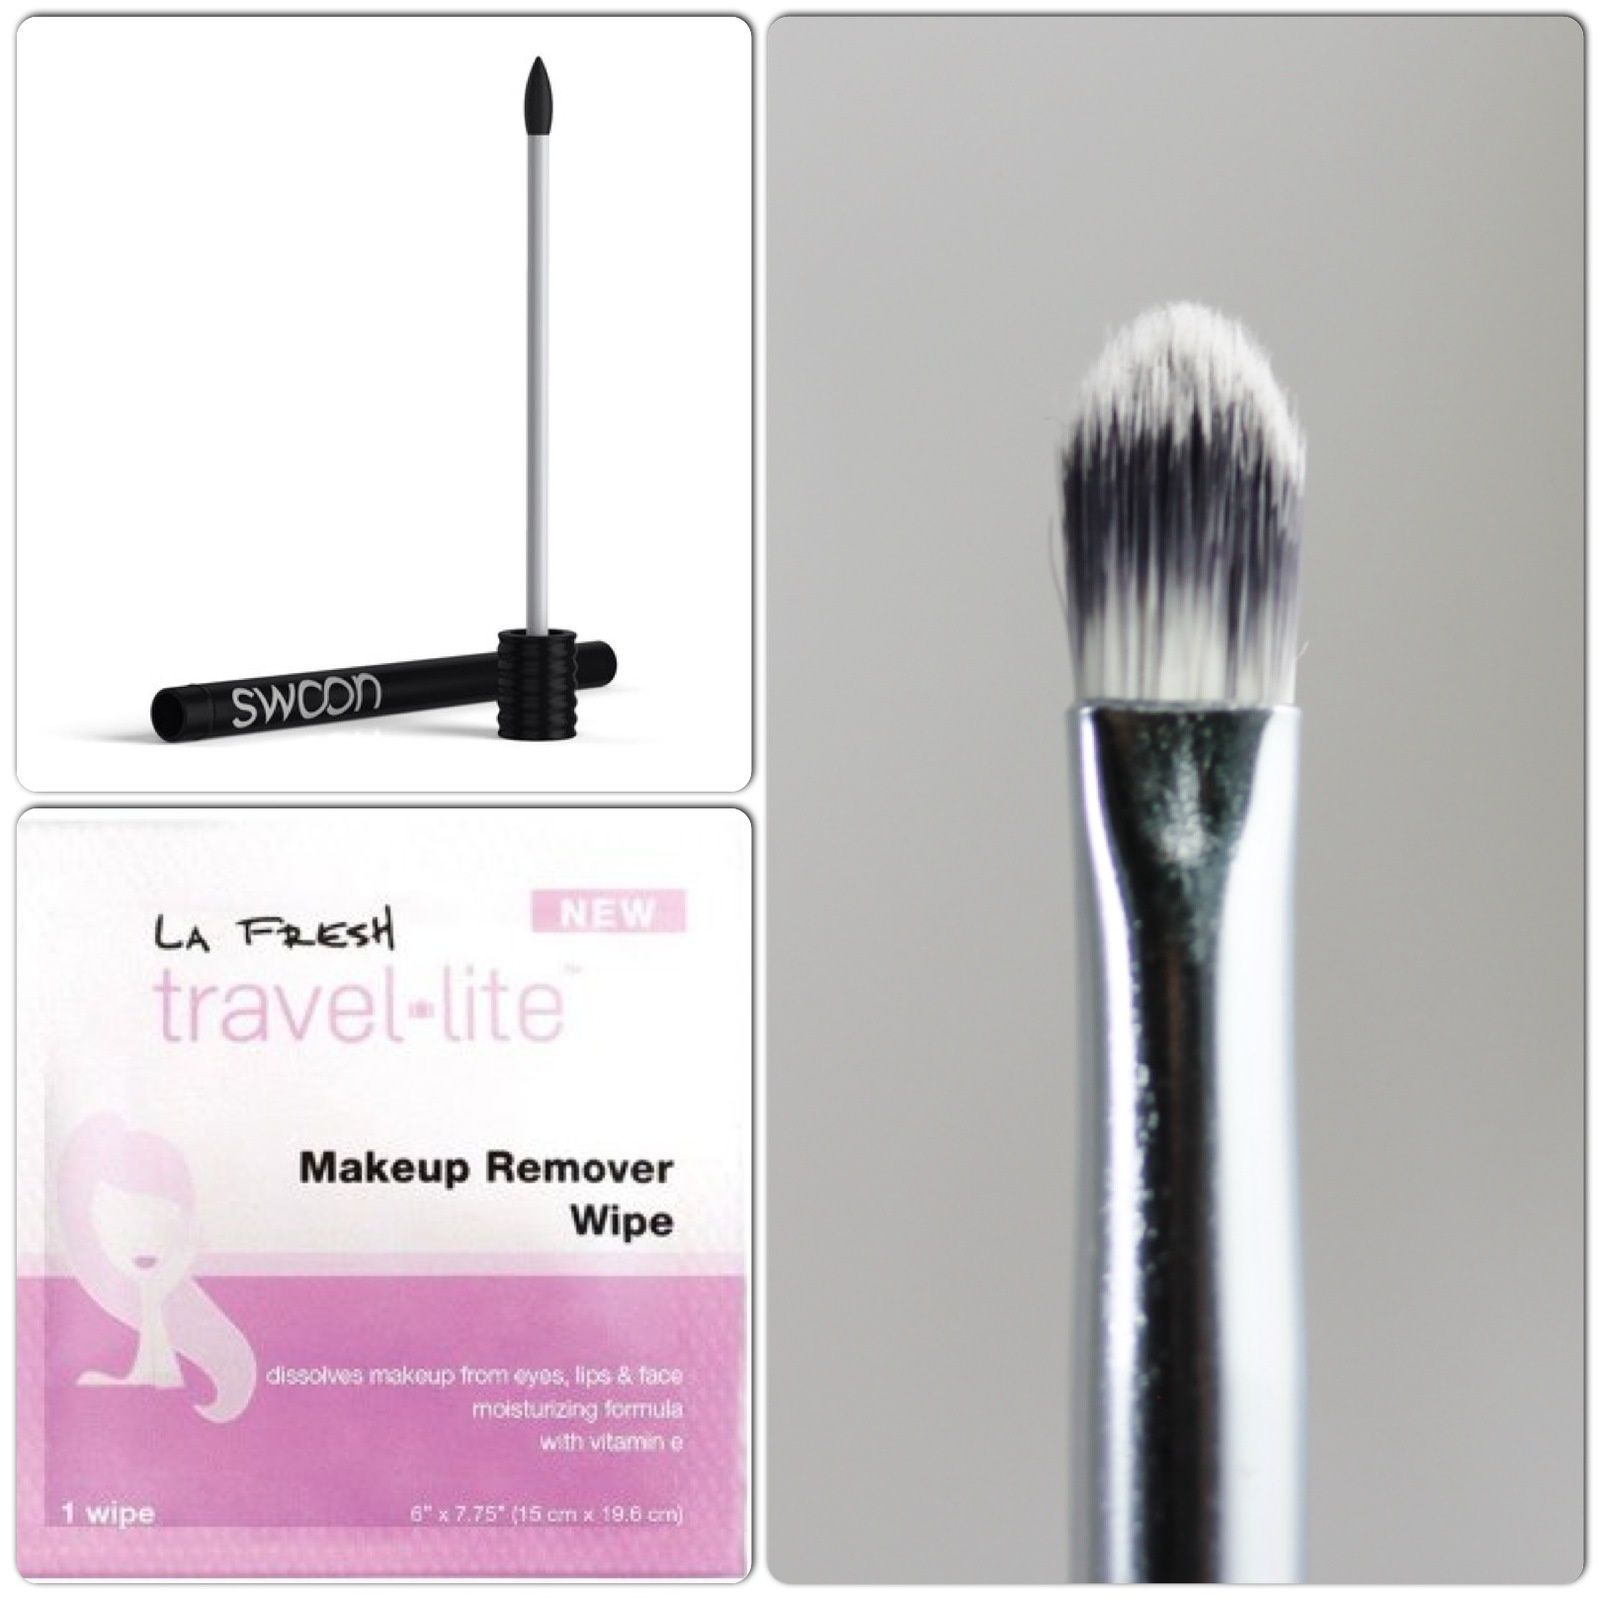 La Fresh Lip/Eye Makeup Remover Packette, Swoon Lip Gloss Reusable Wand, Crown Brush Lip Liner Brush